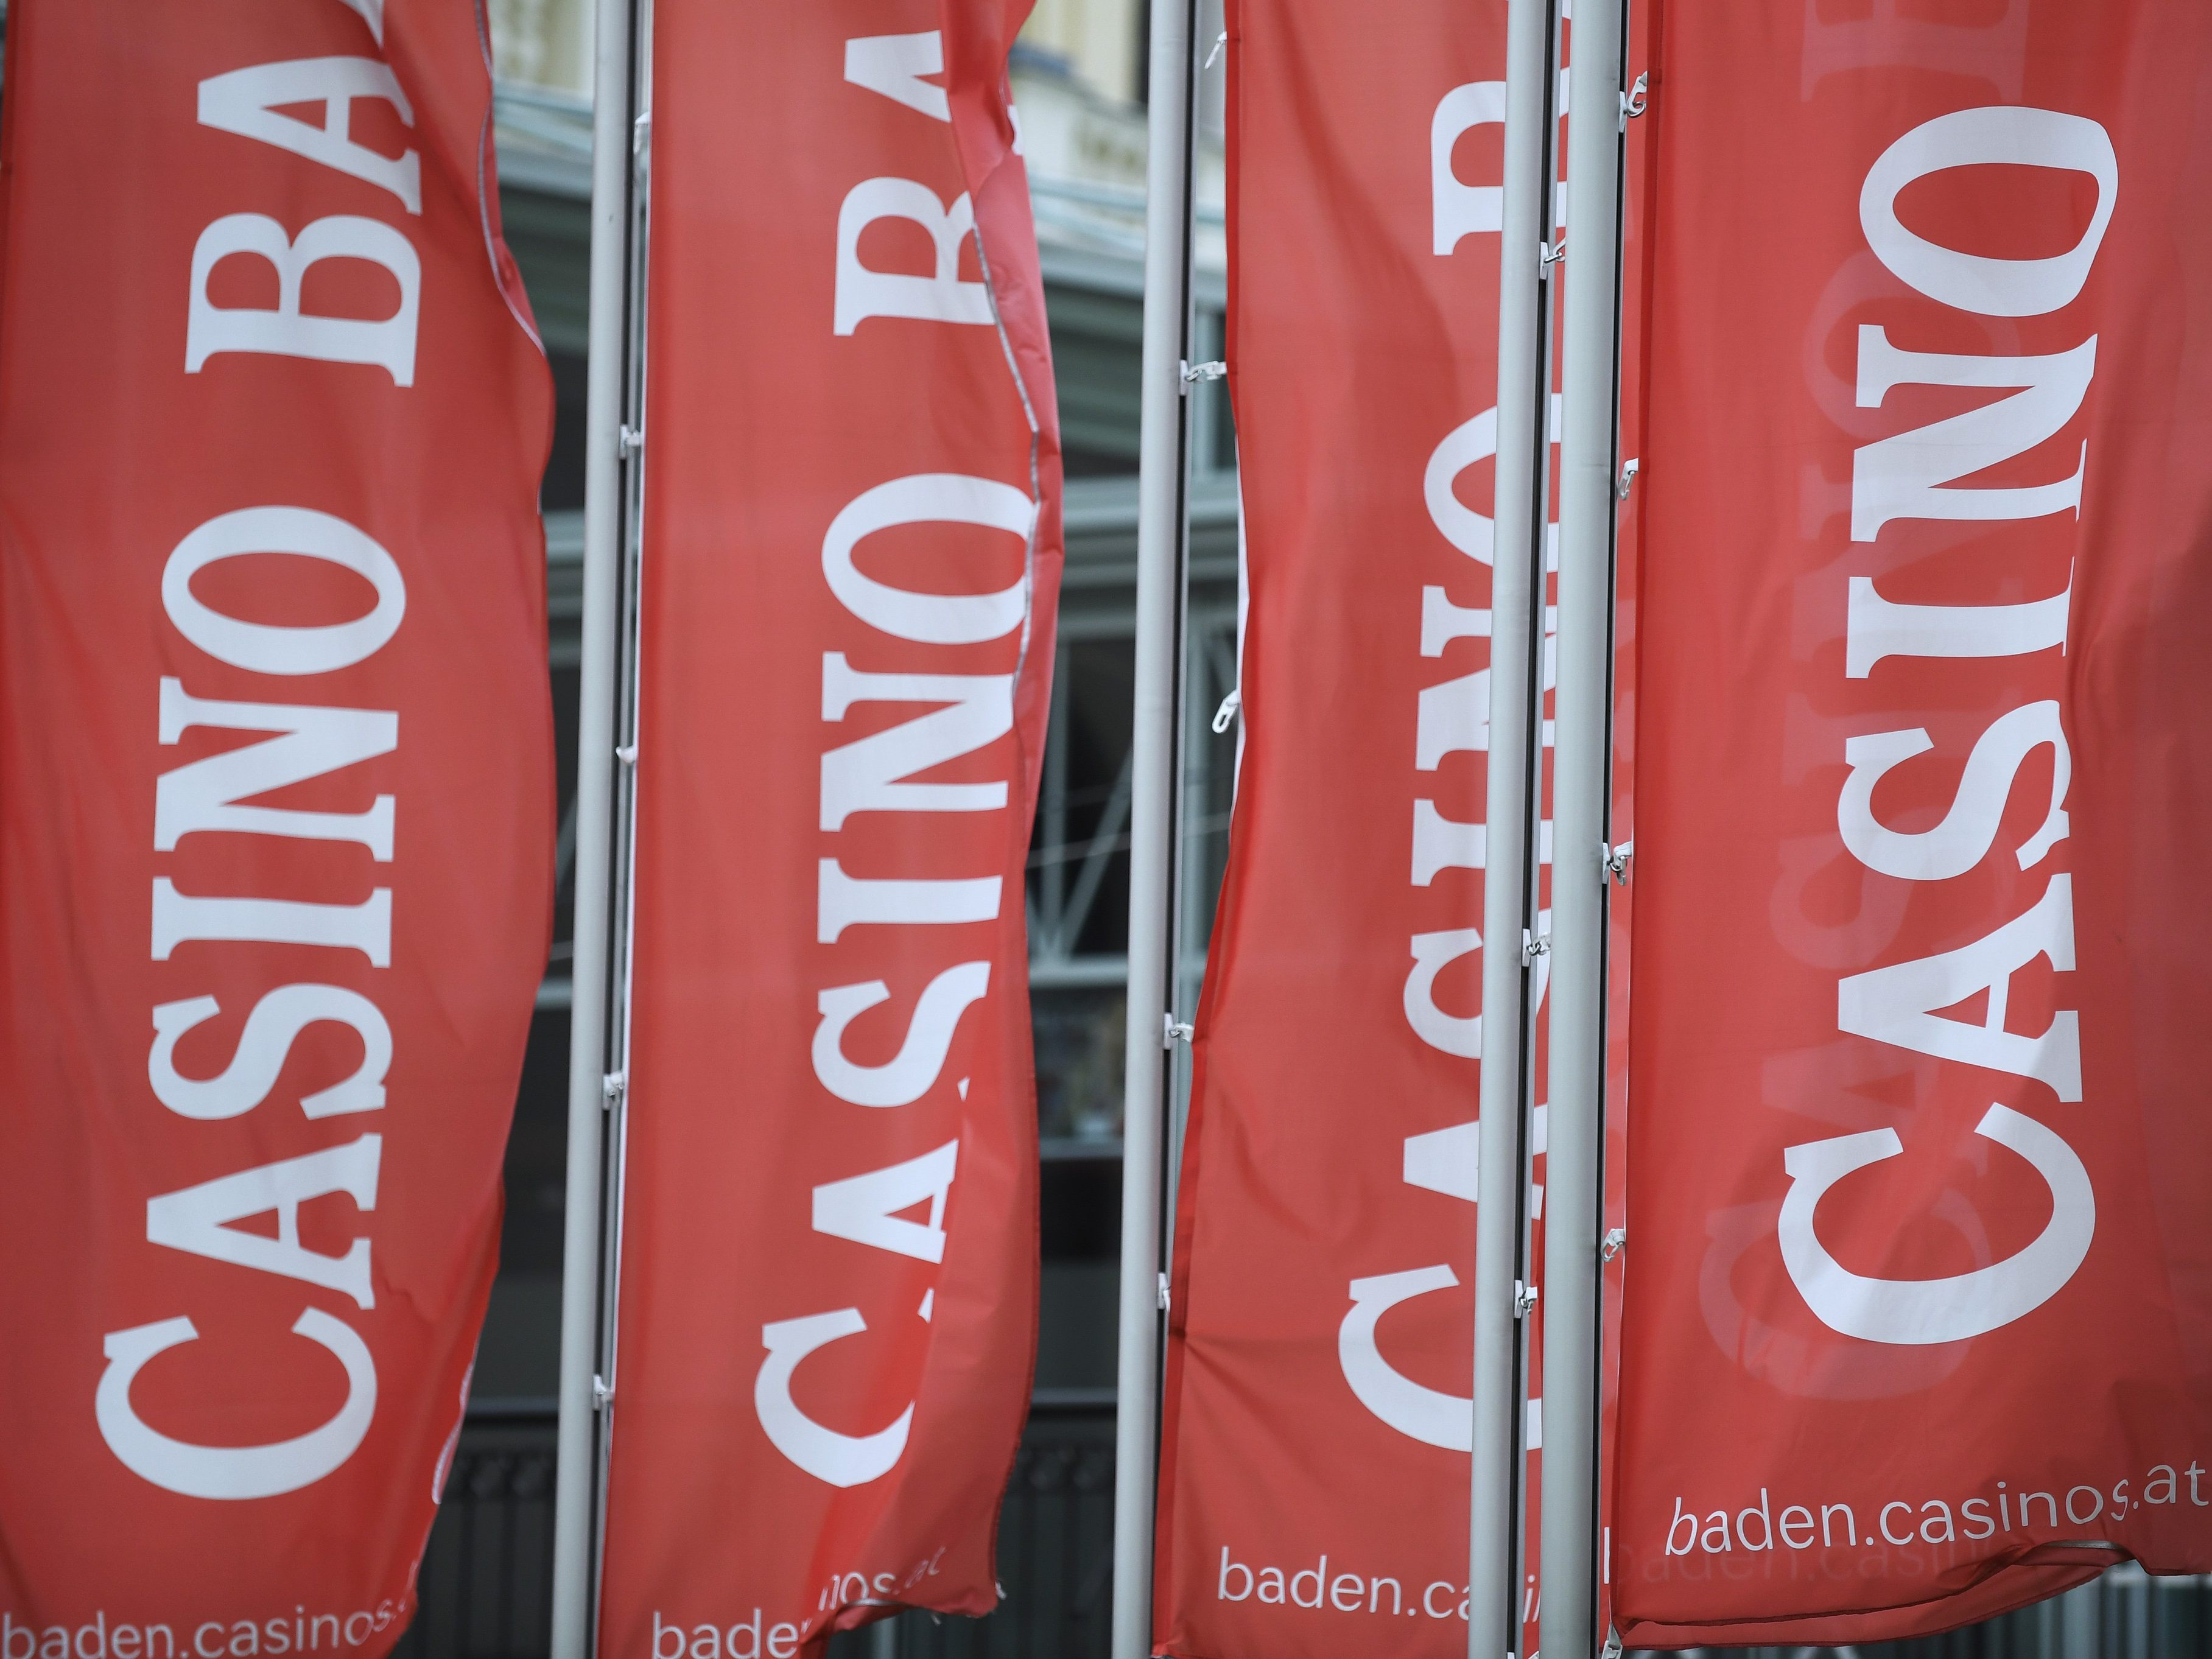 Casinos Austria Corona